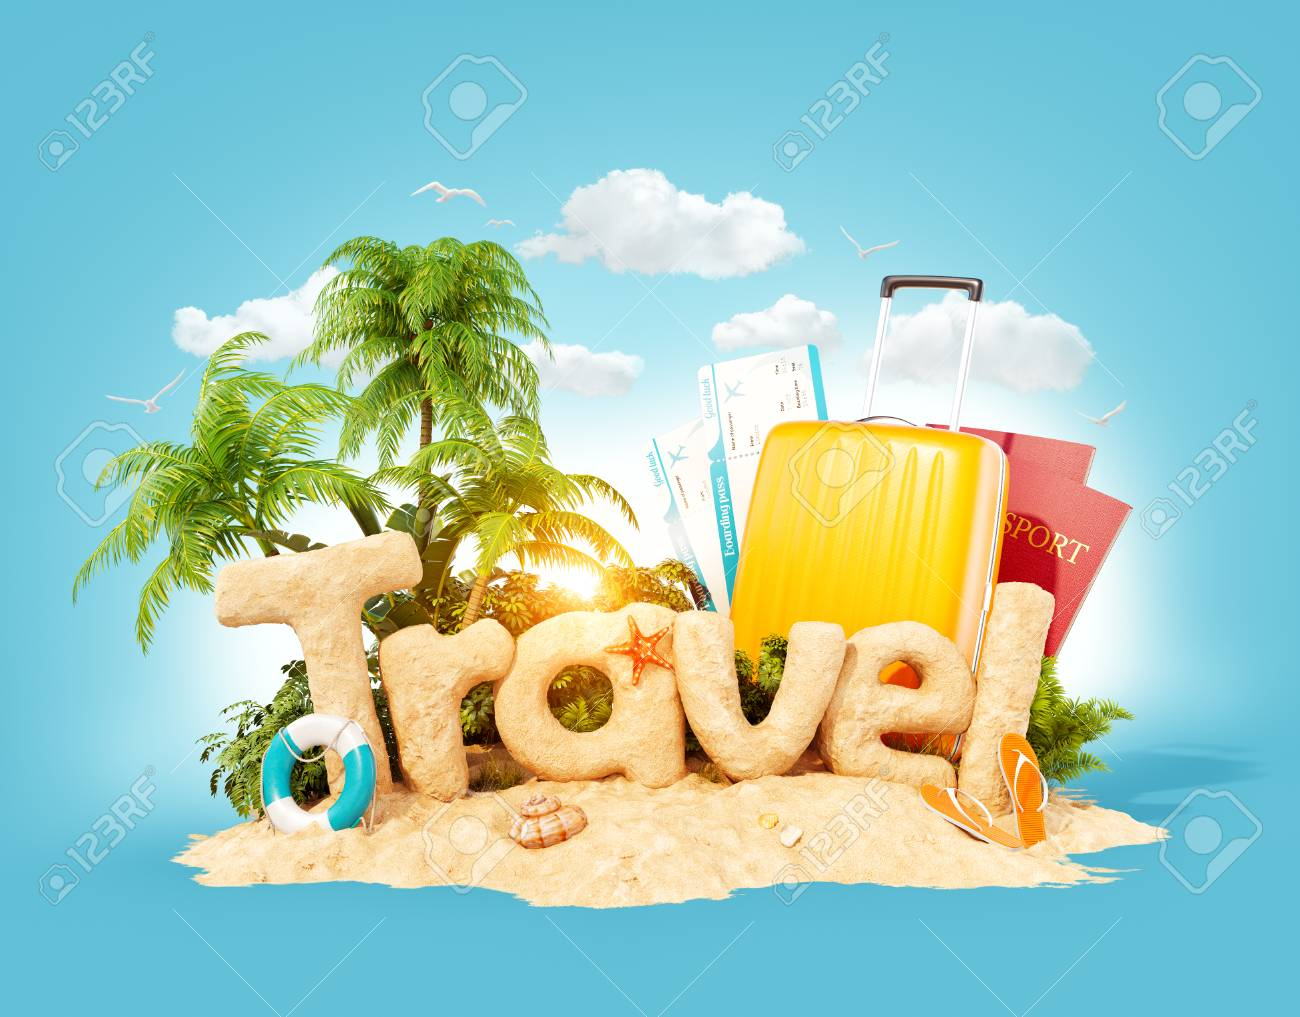 The word Travel made of sand on a tropical island. Unusual 3d illustration of summer vacation. Travel and vacation concept. - 96122474